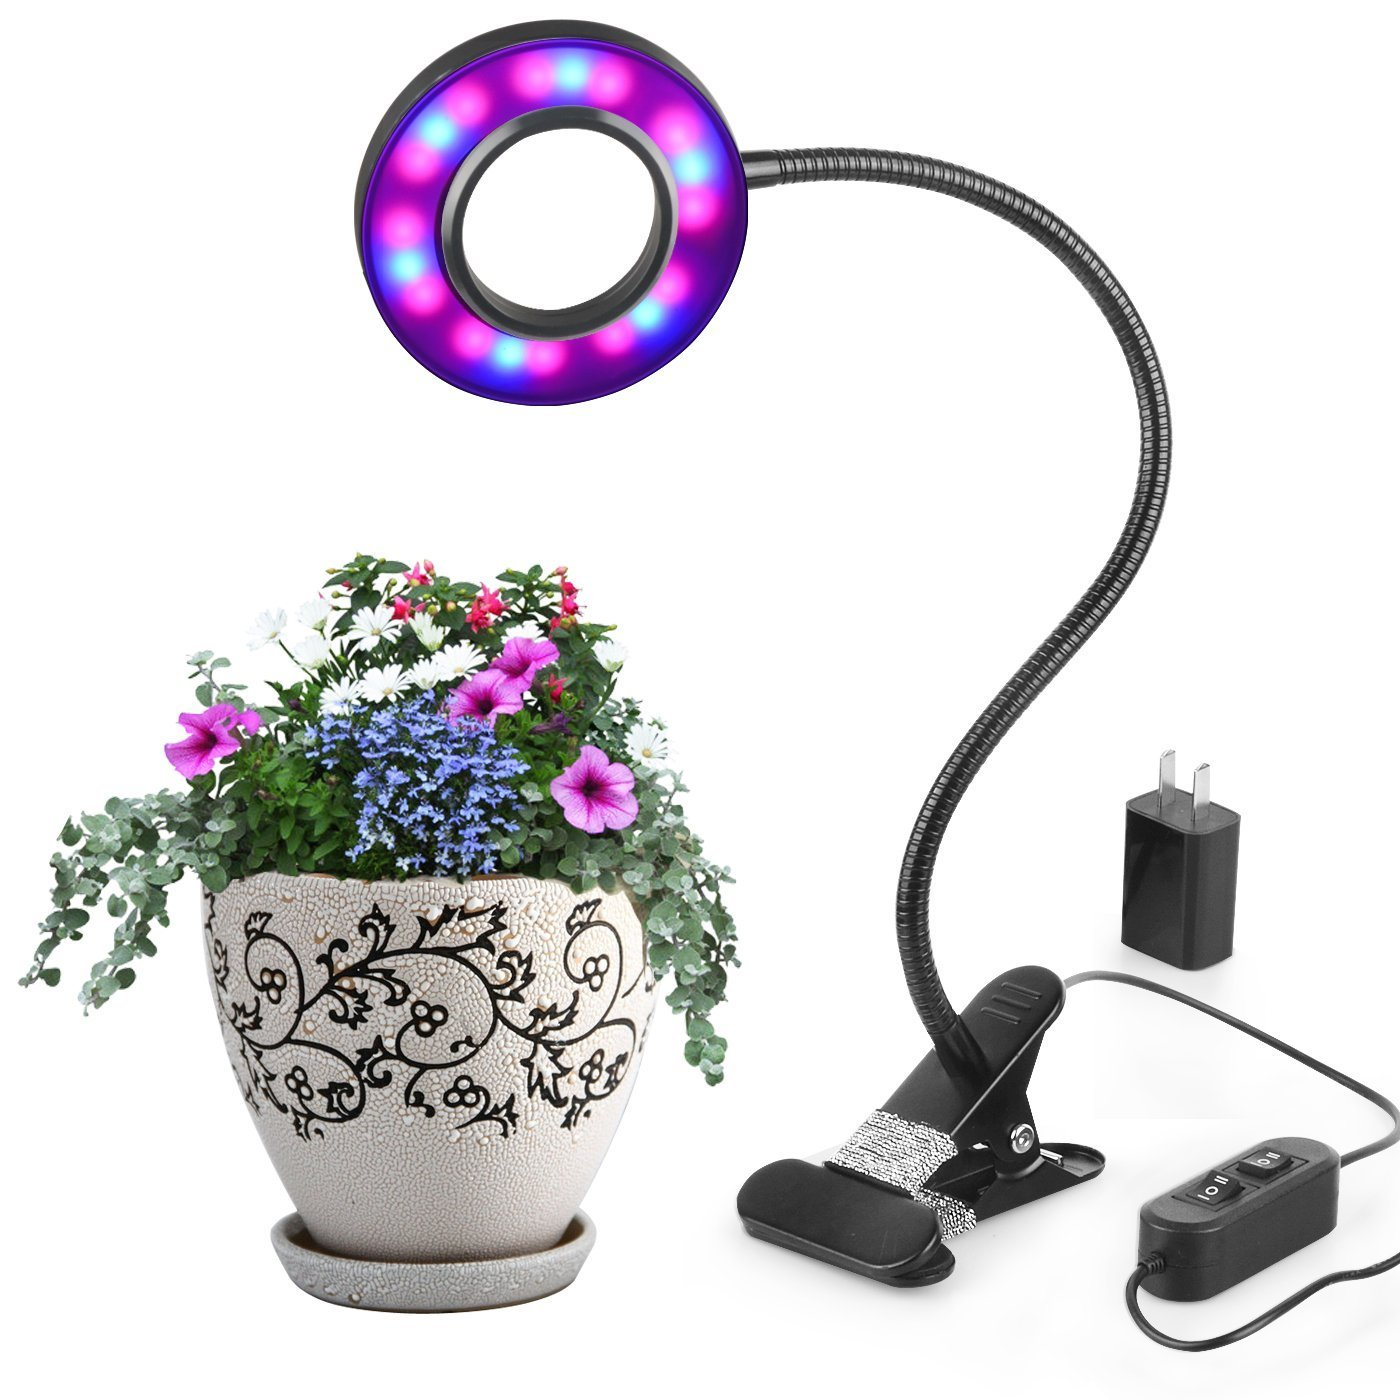 Lanlan LED Plant Grow Light, 10W Adjustable 8 Level Dimmable Clamp Desk Grow Lamp with 360°Flexible Gooseneck for Office Home Indoor Garden Greenhouse Plants